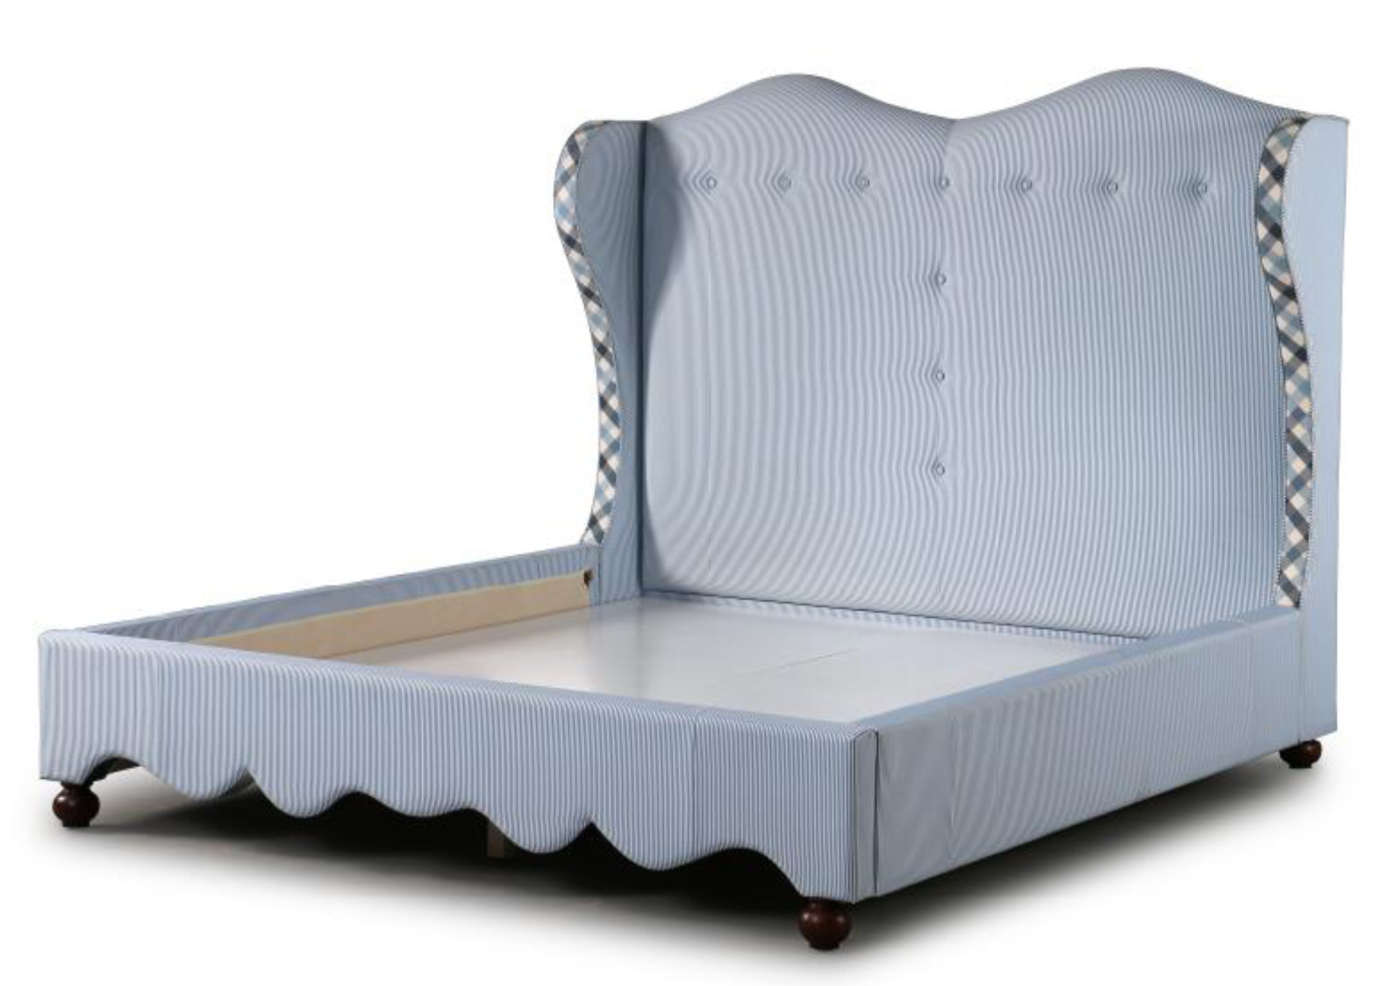 HEADBOARD BED BASE HB-KT01